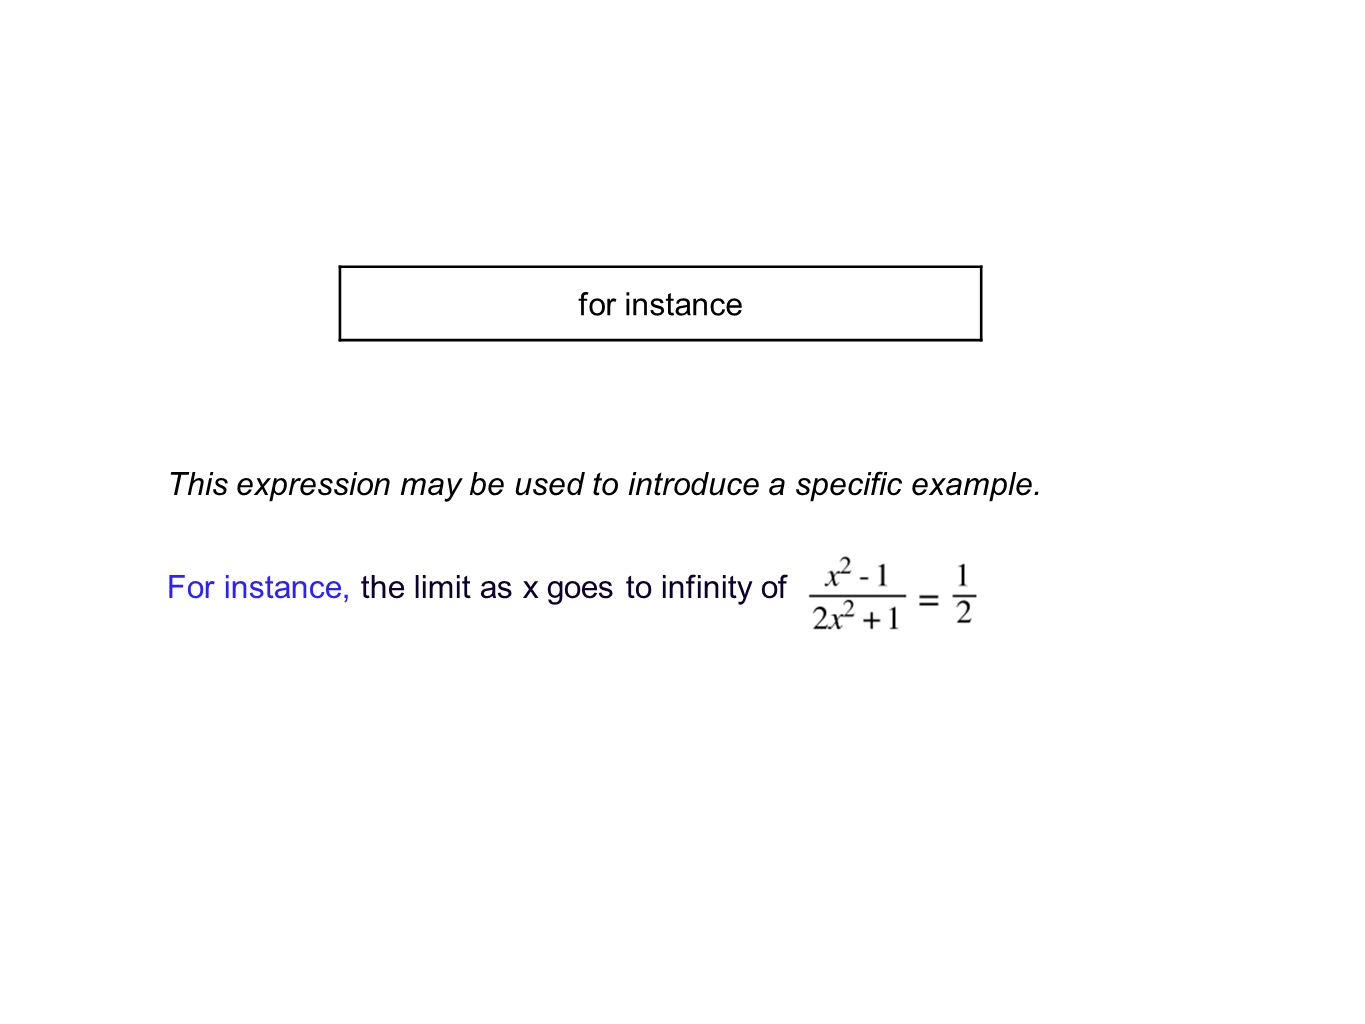 This expression may be used to introduce a specific example.